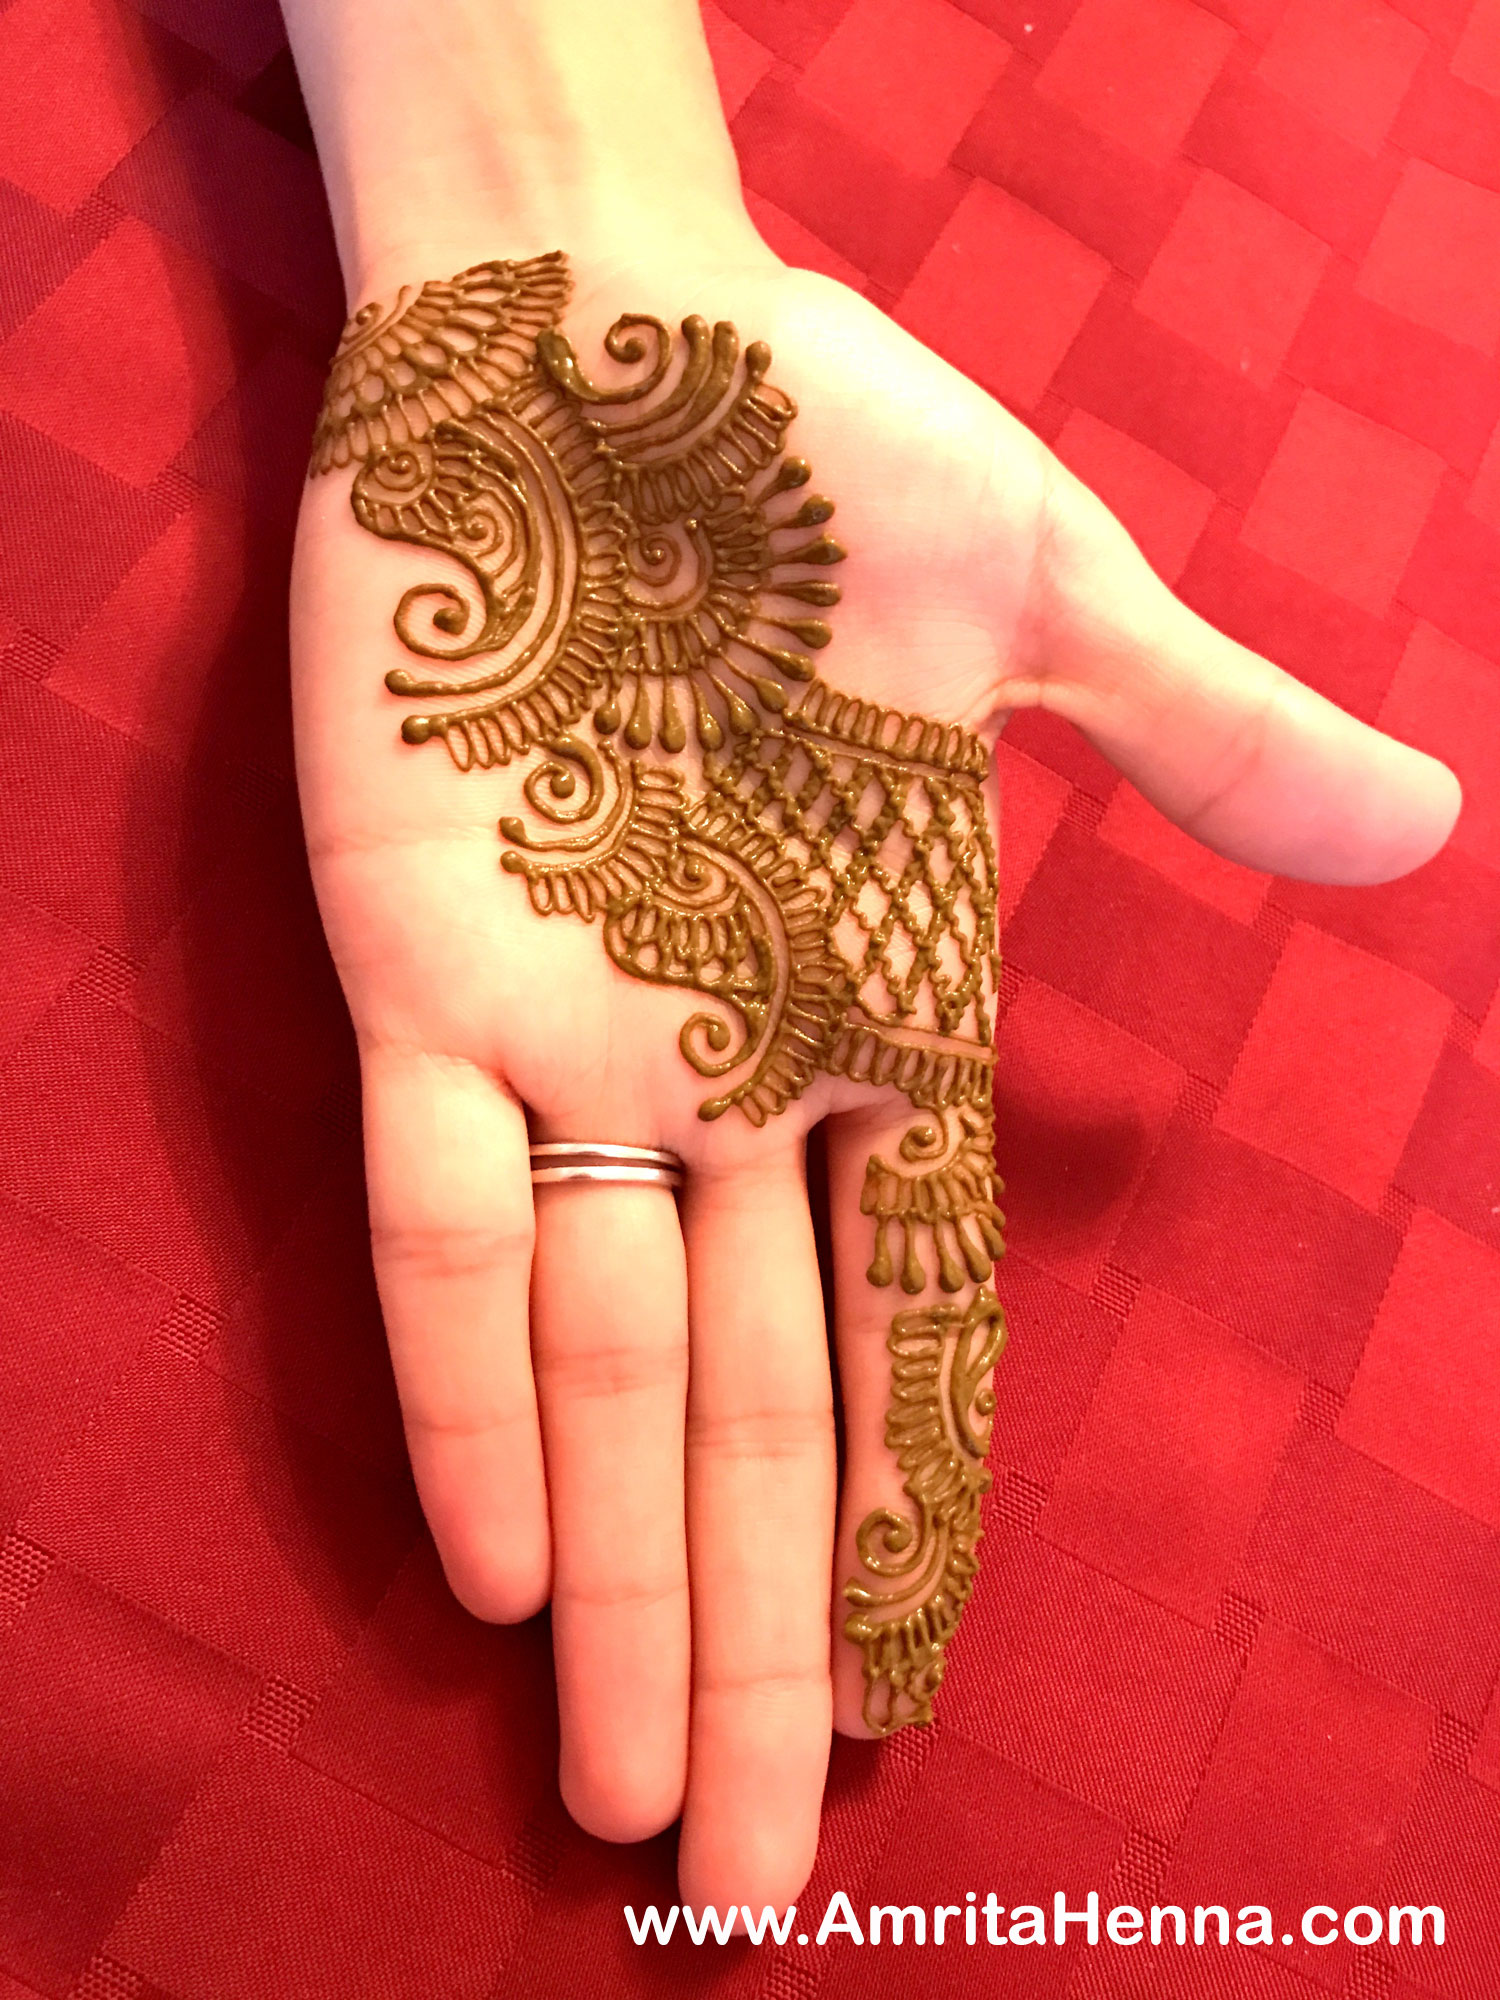 Top 10 Mehendi Designs for your friends Sangeet - 10 Best Henna Mehndi Designs for your Sisters Sangeet Party - Most Popular Sangeet Mehndi Designs - Latest Easy Mehendi Designs for a Sangeet Party - 10 Most Popular Beautiful Henna Designs for a Bridal Sangeet Party - Indian Weddings Henna Mehndi Designs